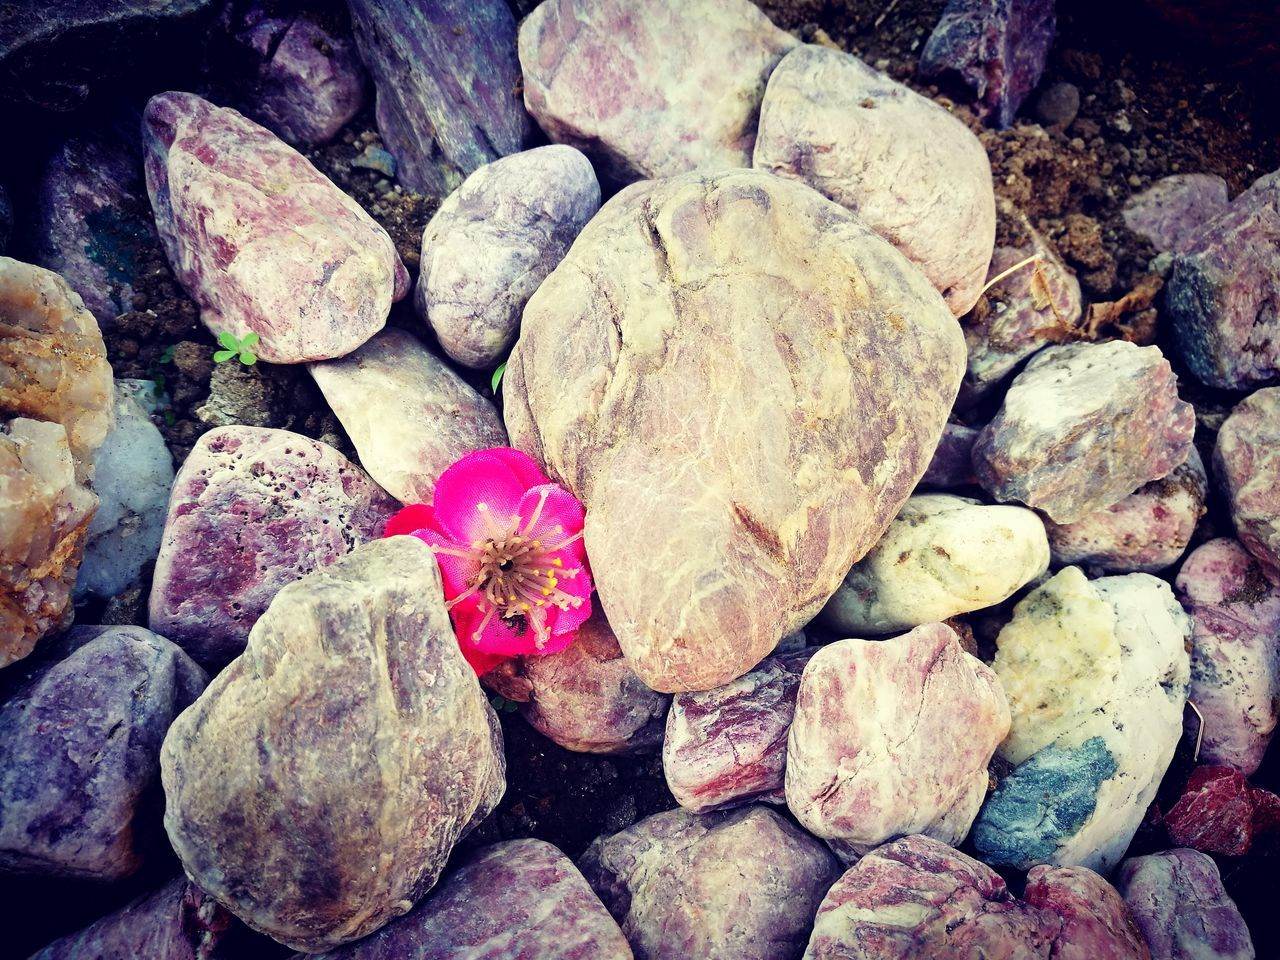 rock - object, nature, no people, pebble, outdoors, day, flower, close-up, pebble beach, animal themes, beauty in nature, fragility, flower head, freshness